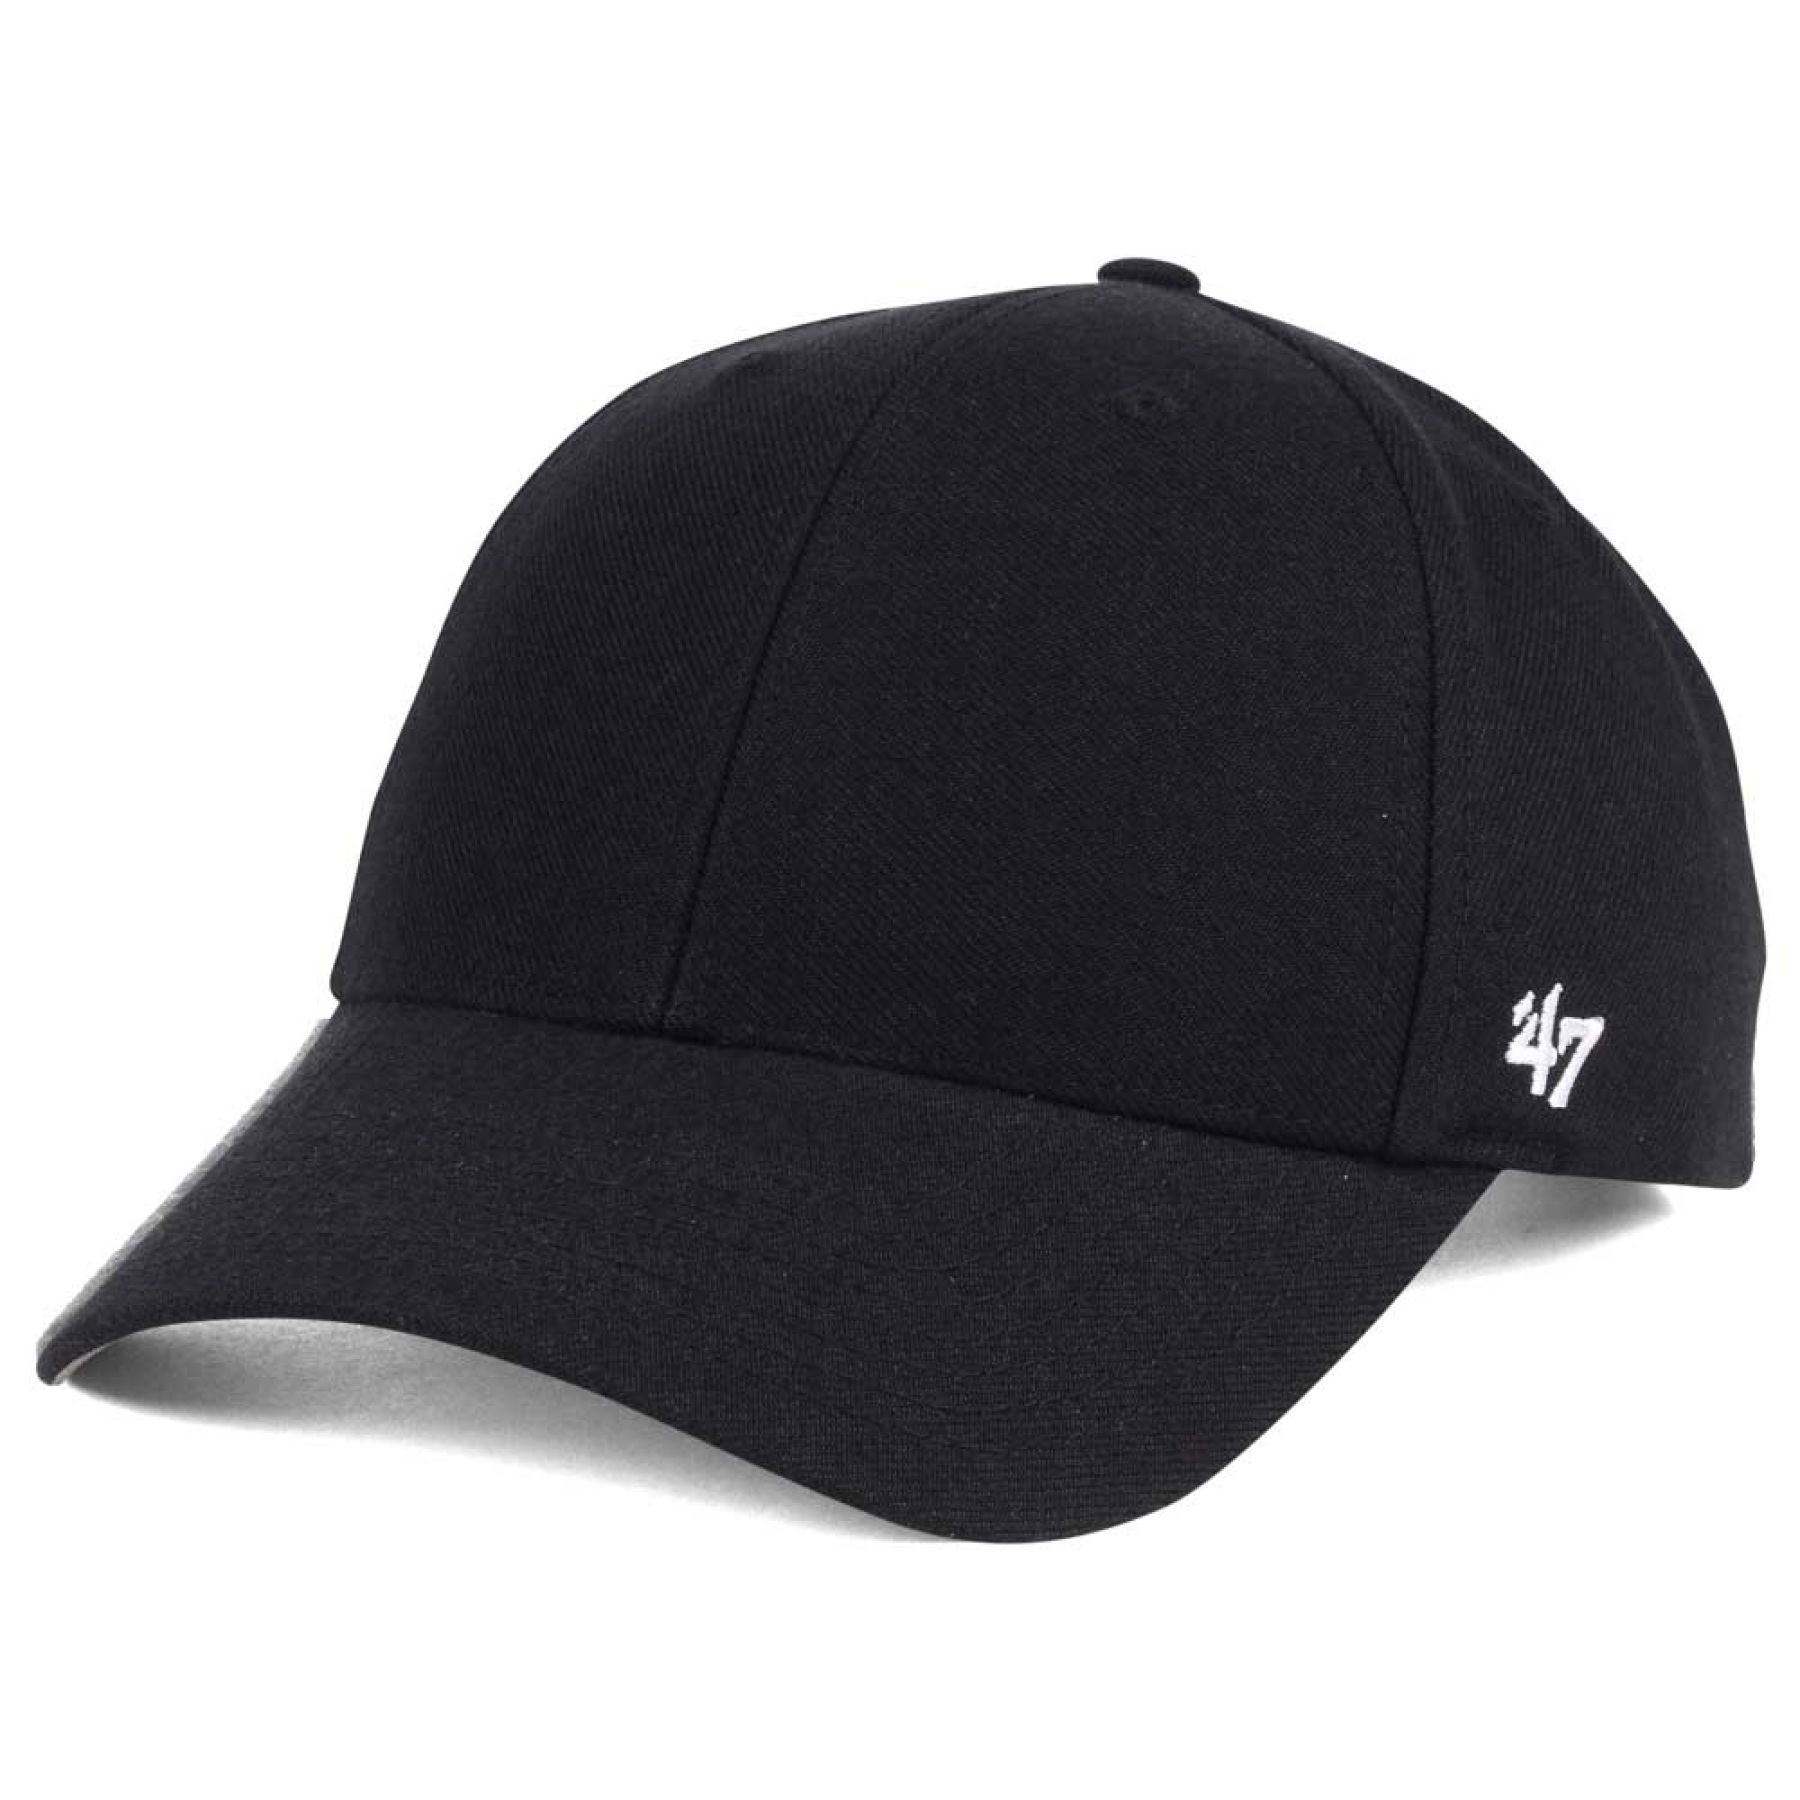 new styles 26e59 2da70 ... Hat - Black   Adjustable. Hover to Zoom